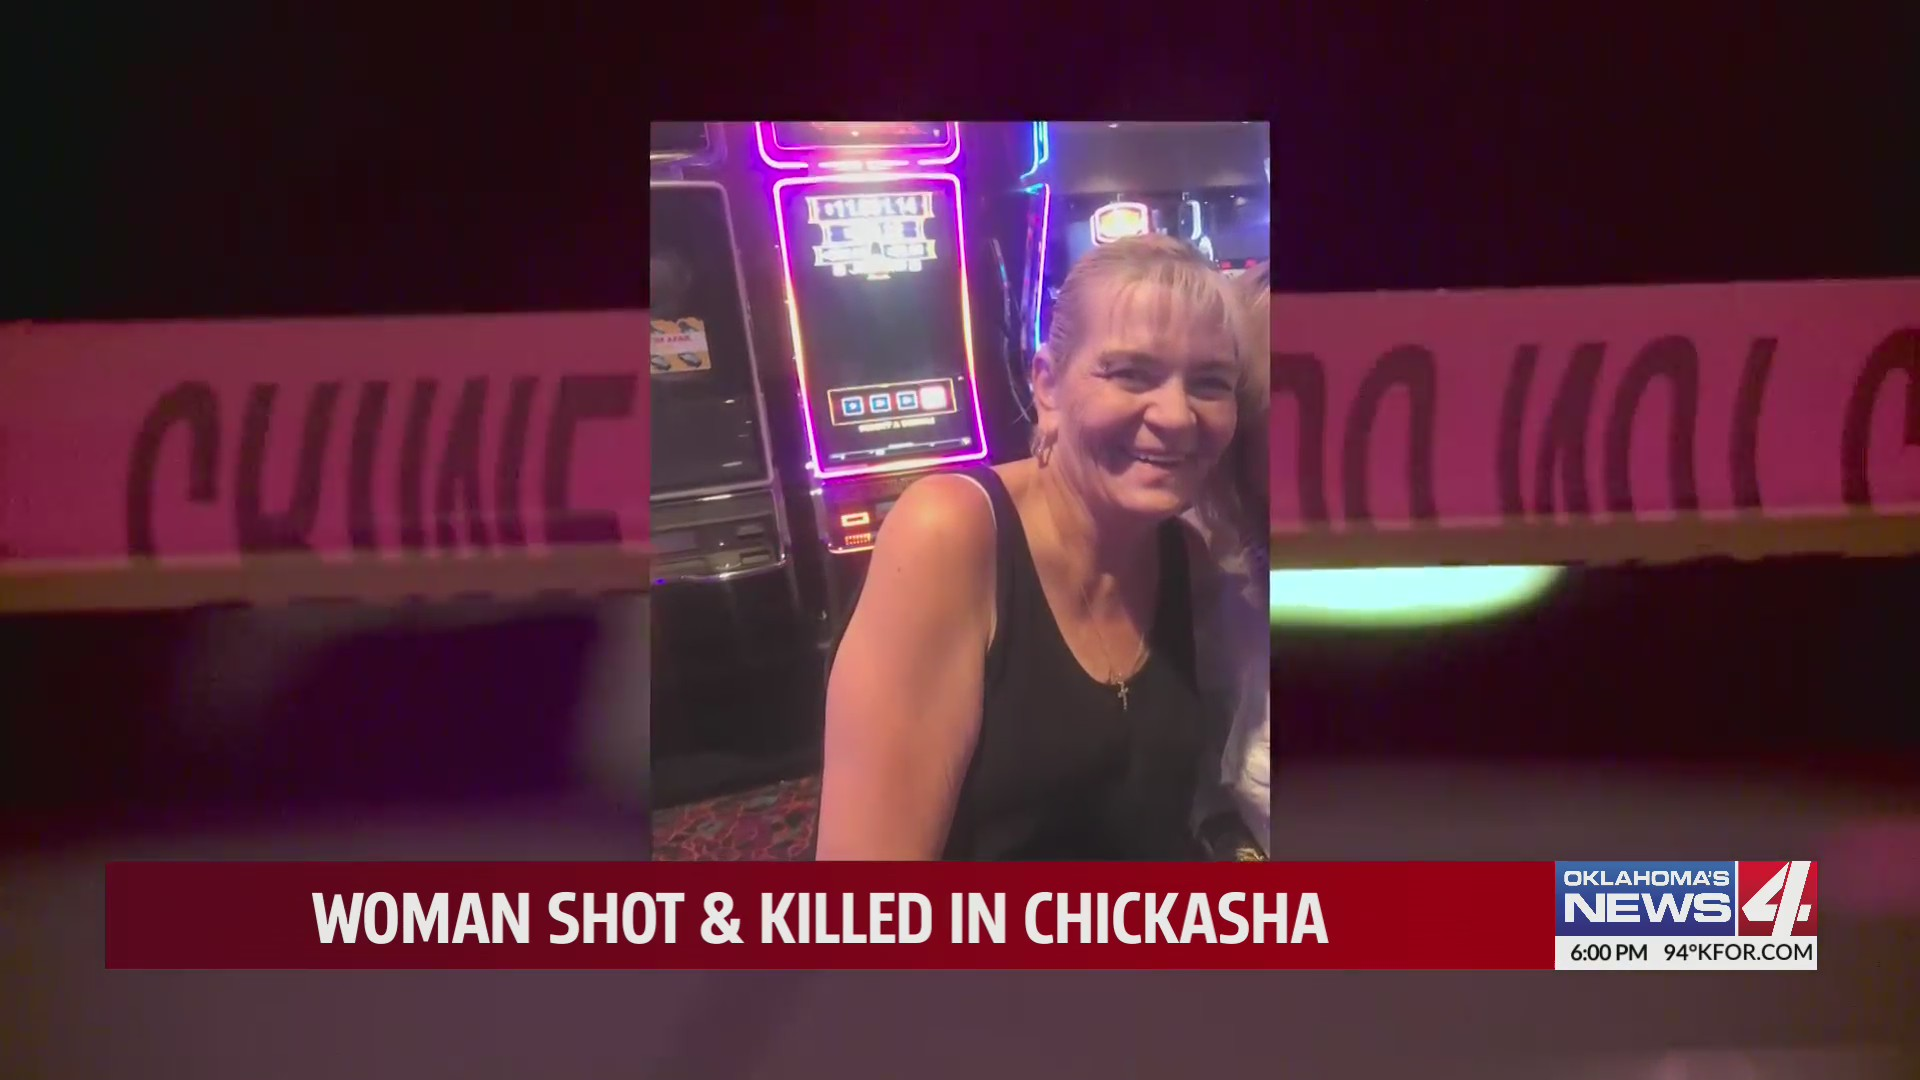 Photo of Lisa Hight, who was shot and killed in Chickasha